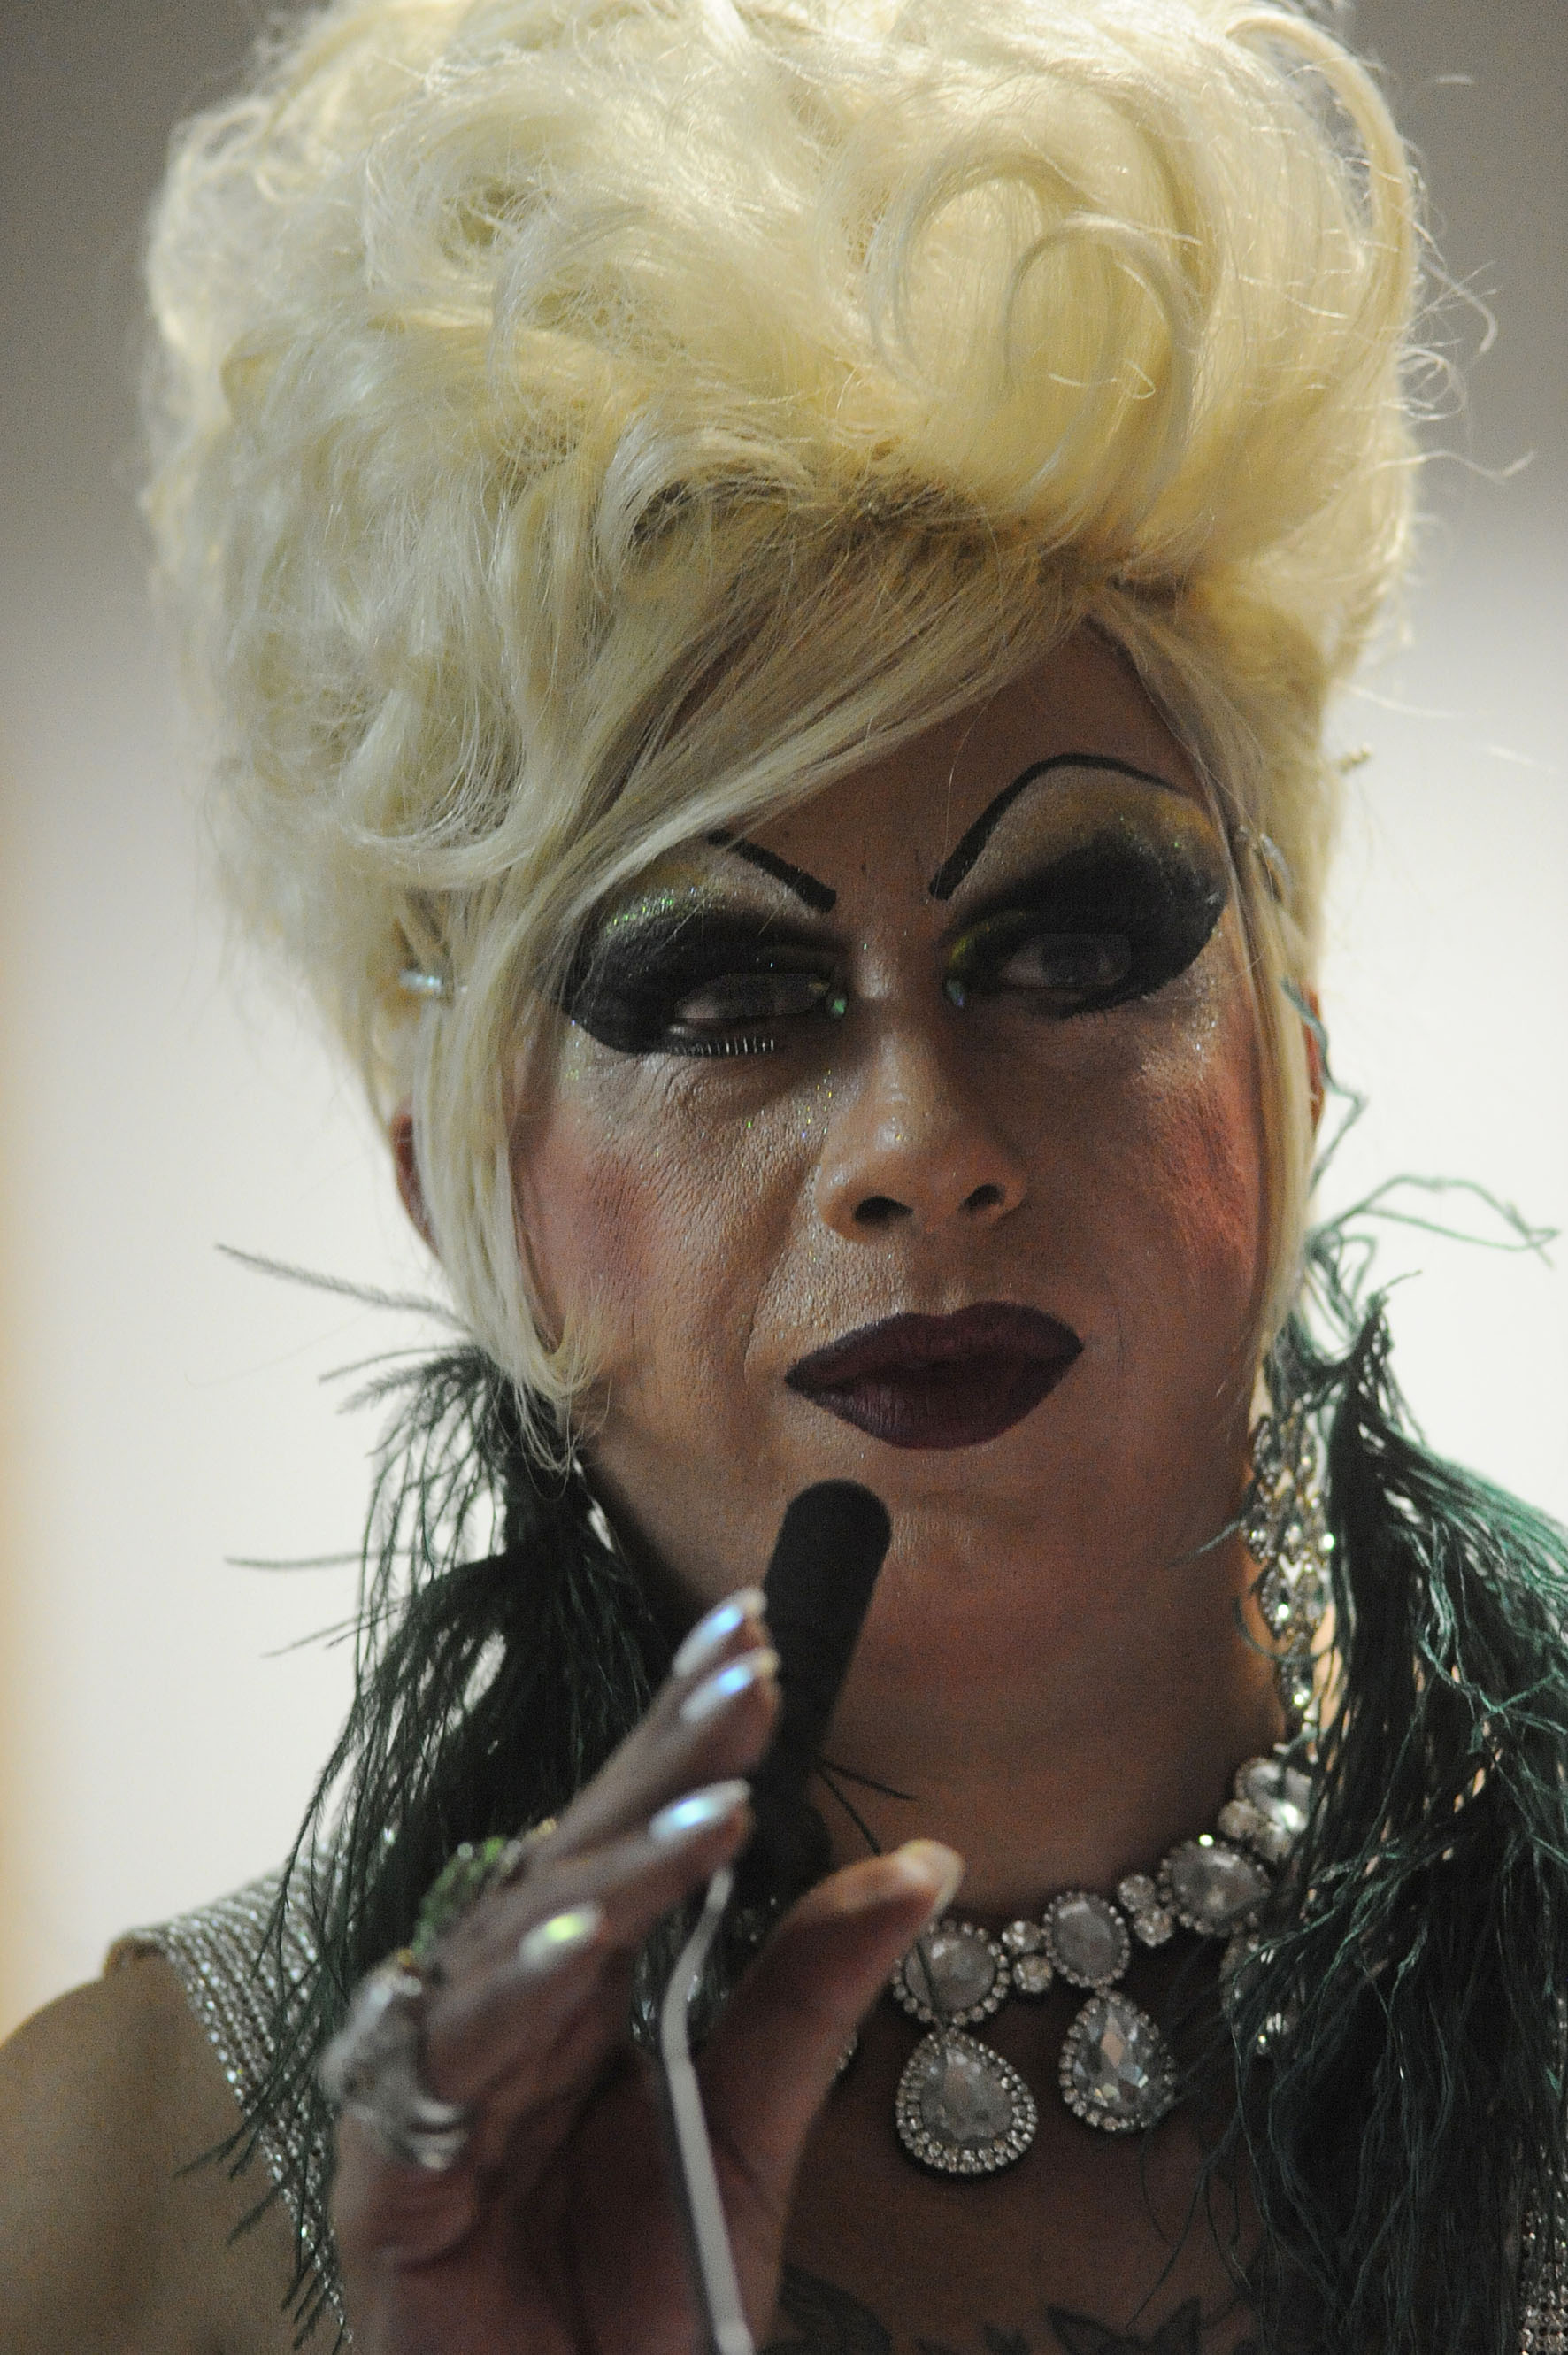 Drag queen Sissi Girl <a style='float:right' href='https://www3.al.sp.gov.br/repositorio/noticia/N-06-2016/fg192253.jpg' target=_blank><img src='/_img/material-file-download-white.png' width='14px' alt='Clique para baixar a imagem'></a>